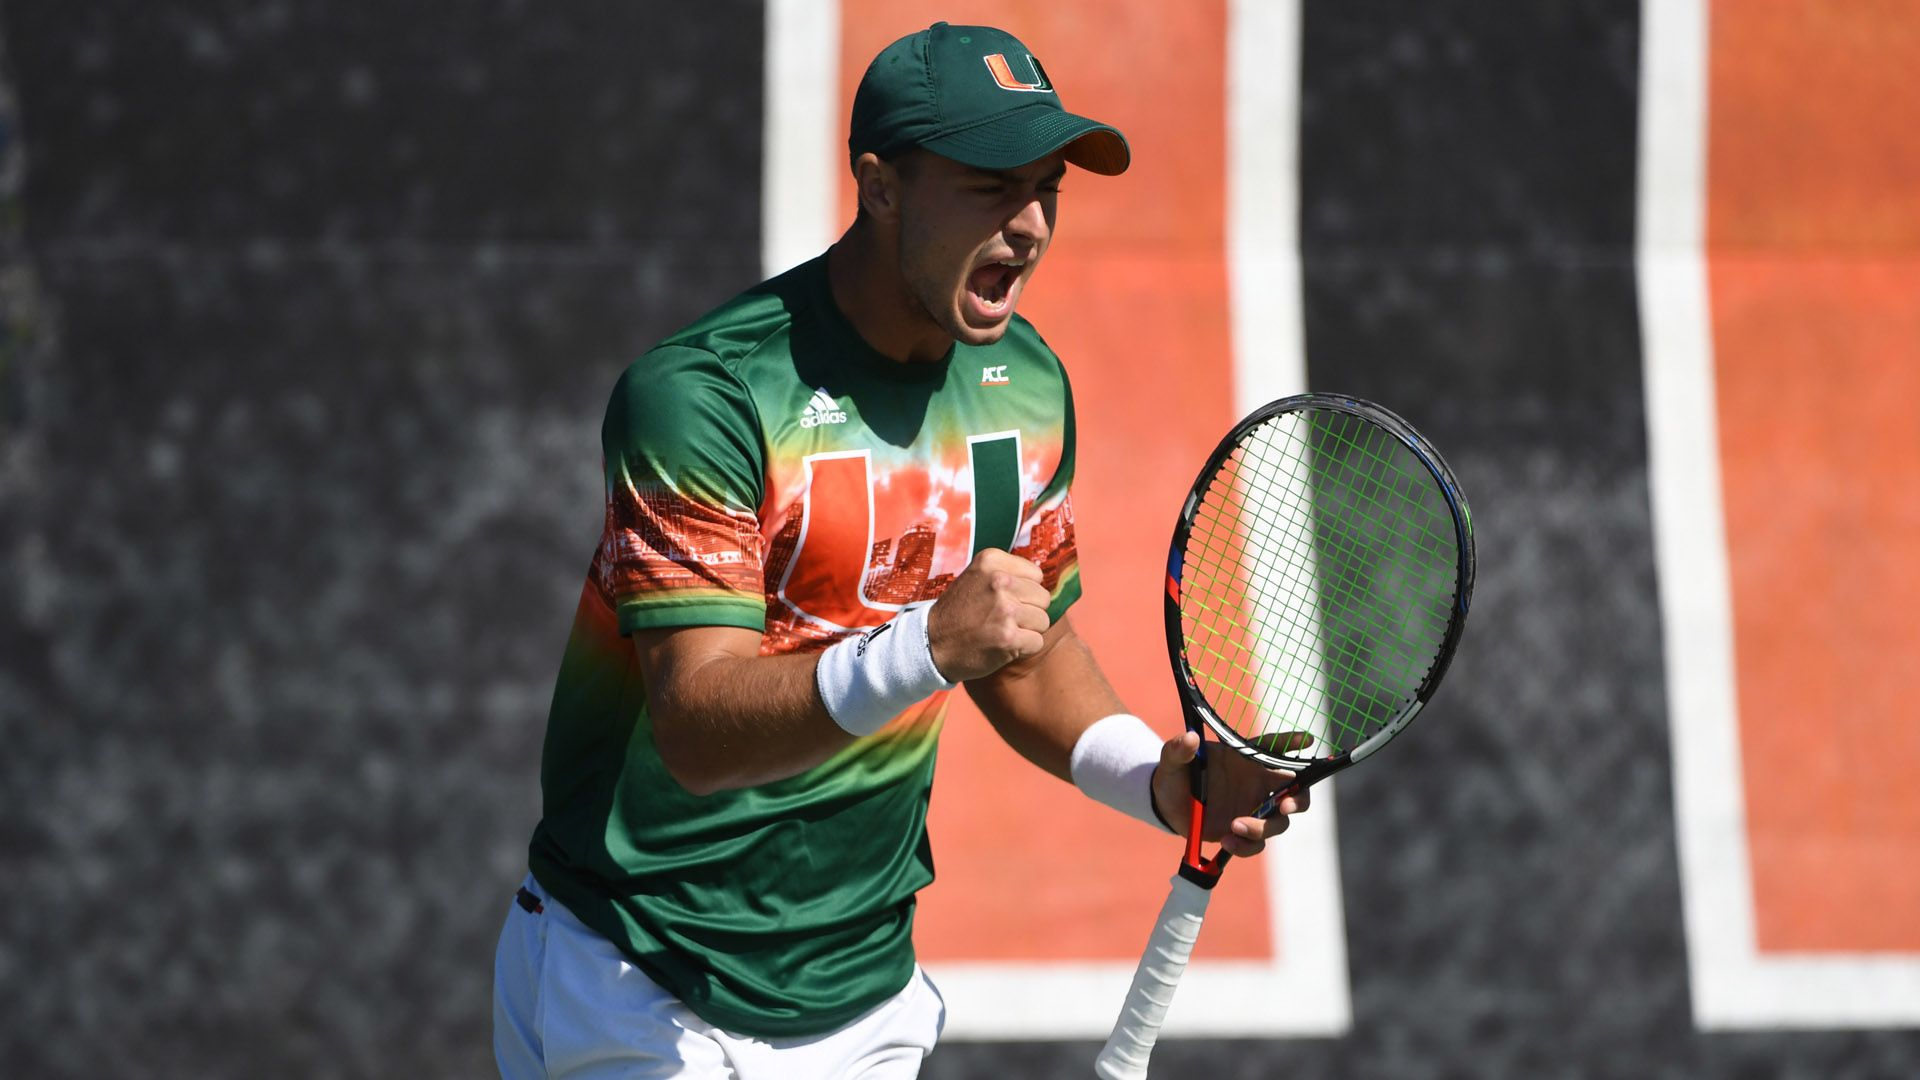 Canes Travel to Starkville for Doubleheader